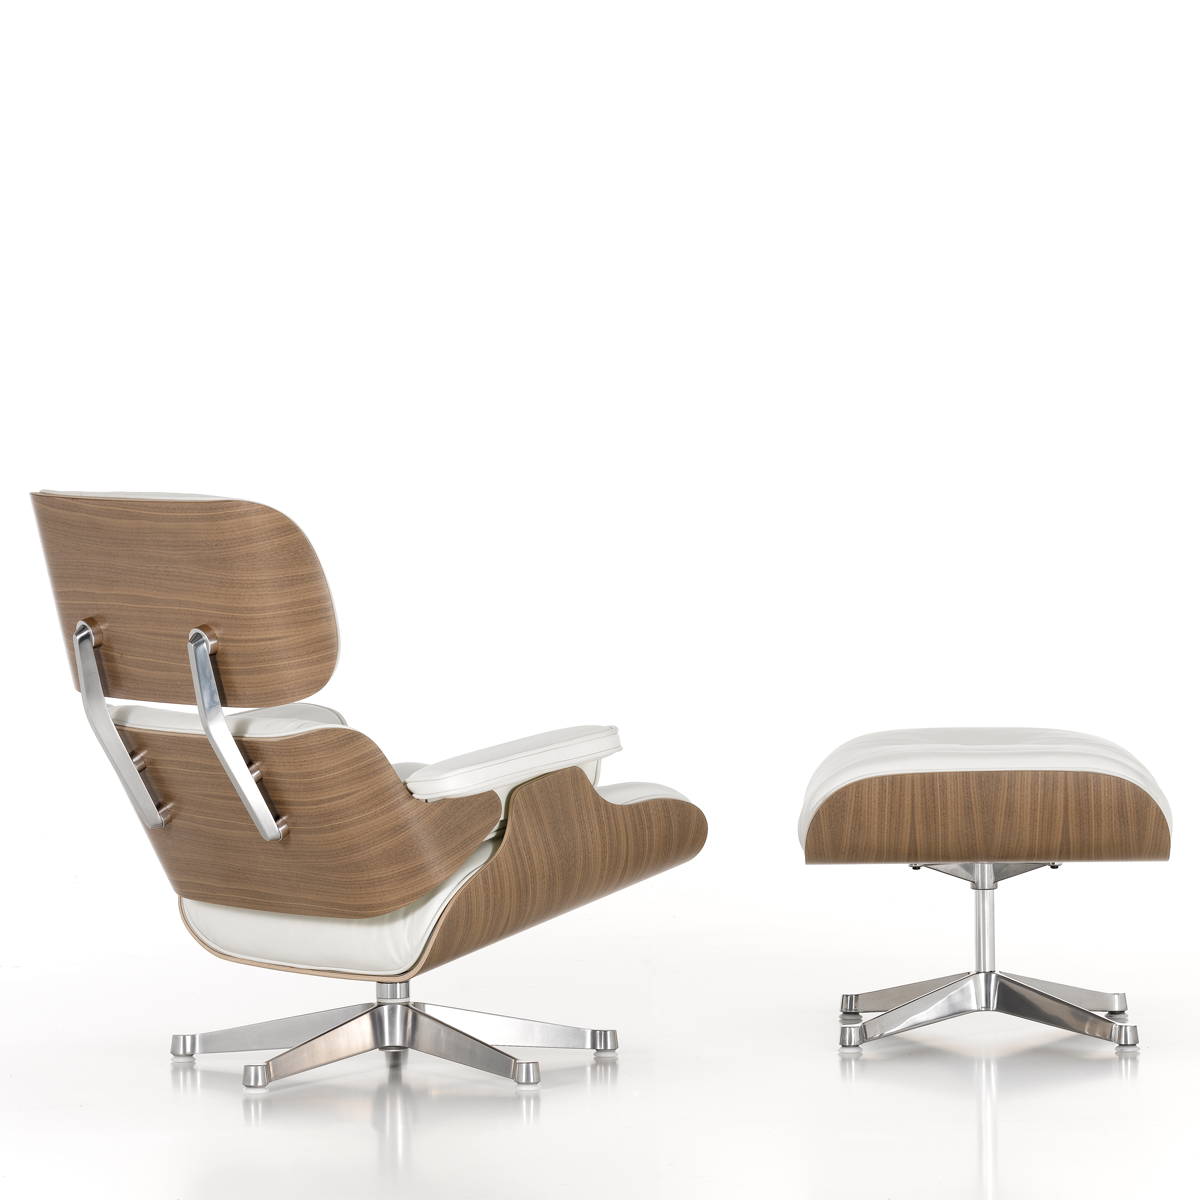 Eames lounge chair ottoman white edition tojo for Charles eames lounge chair nachbildung